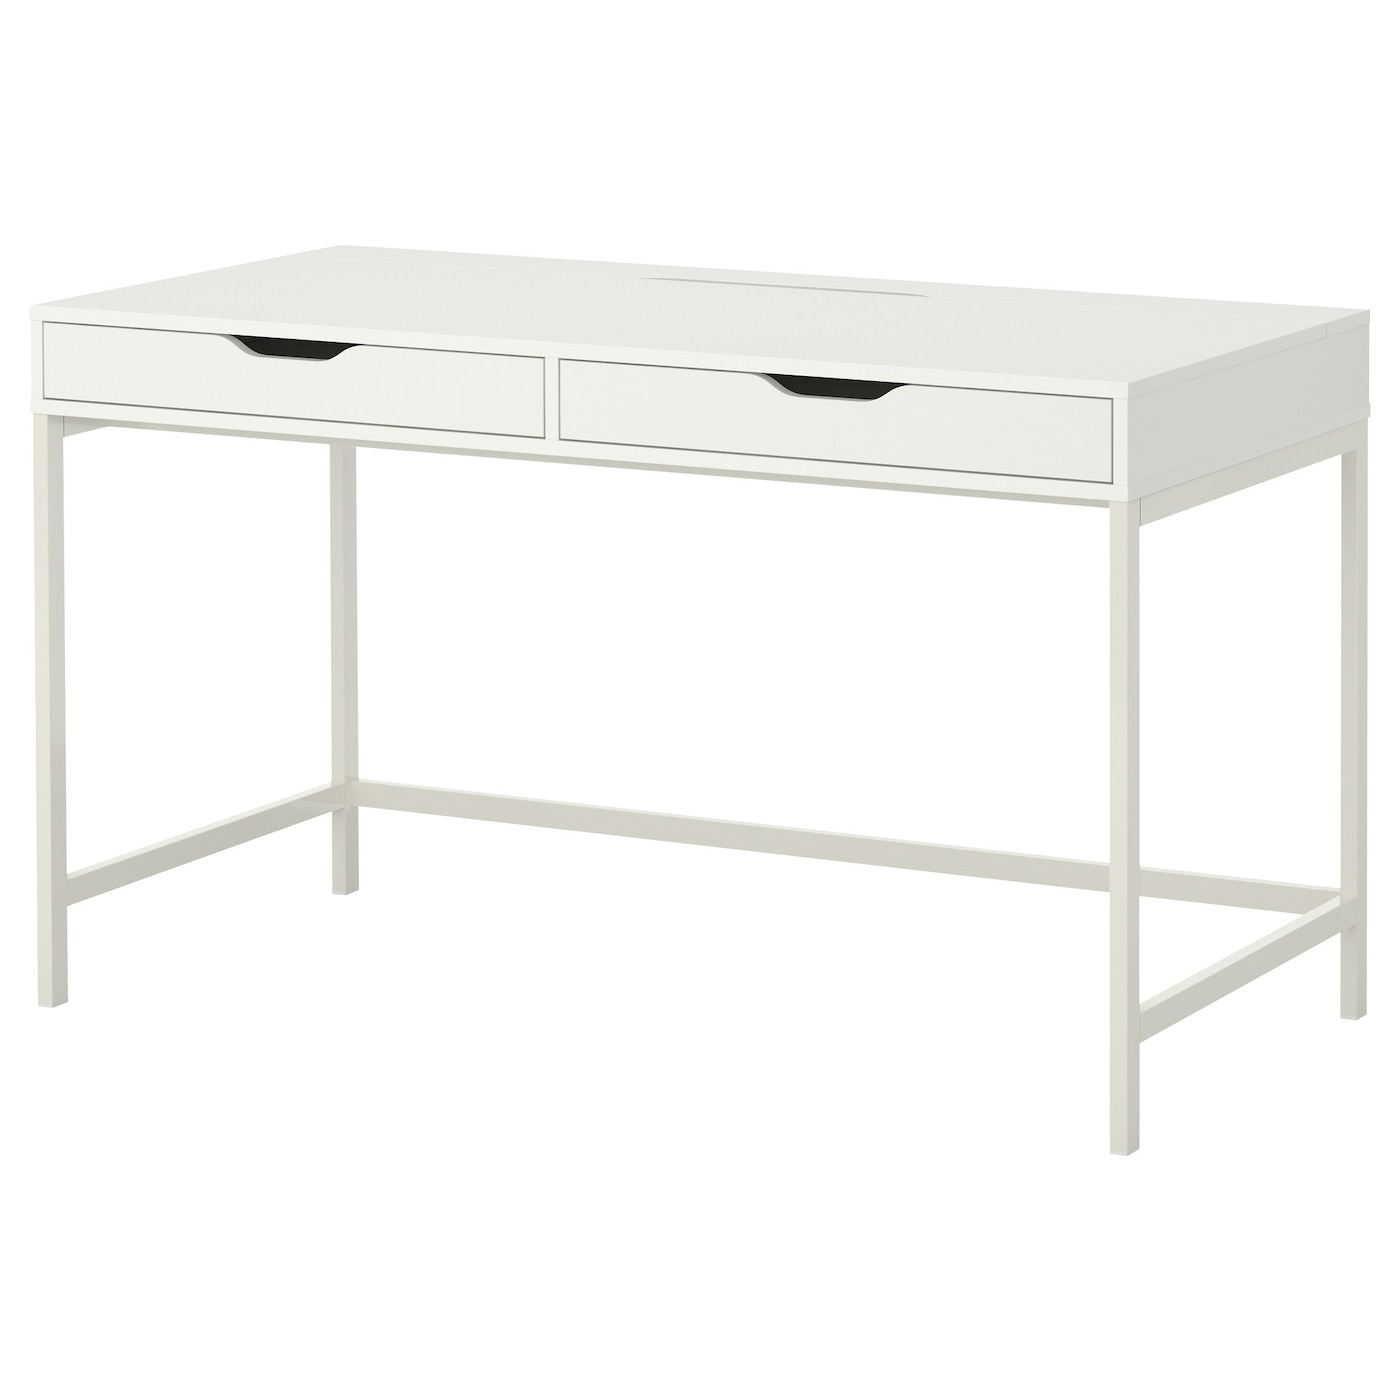 Alex desk white 131 x 60 cm ikea for Ikea drawing desk